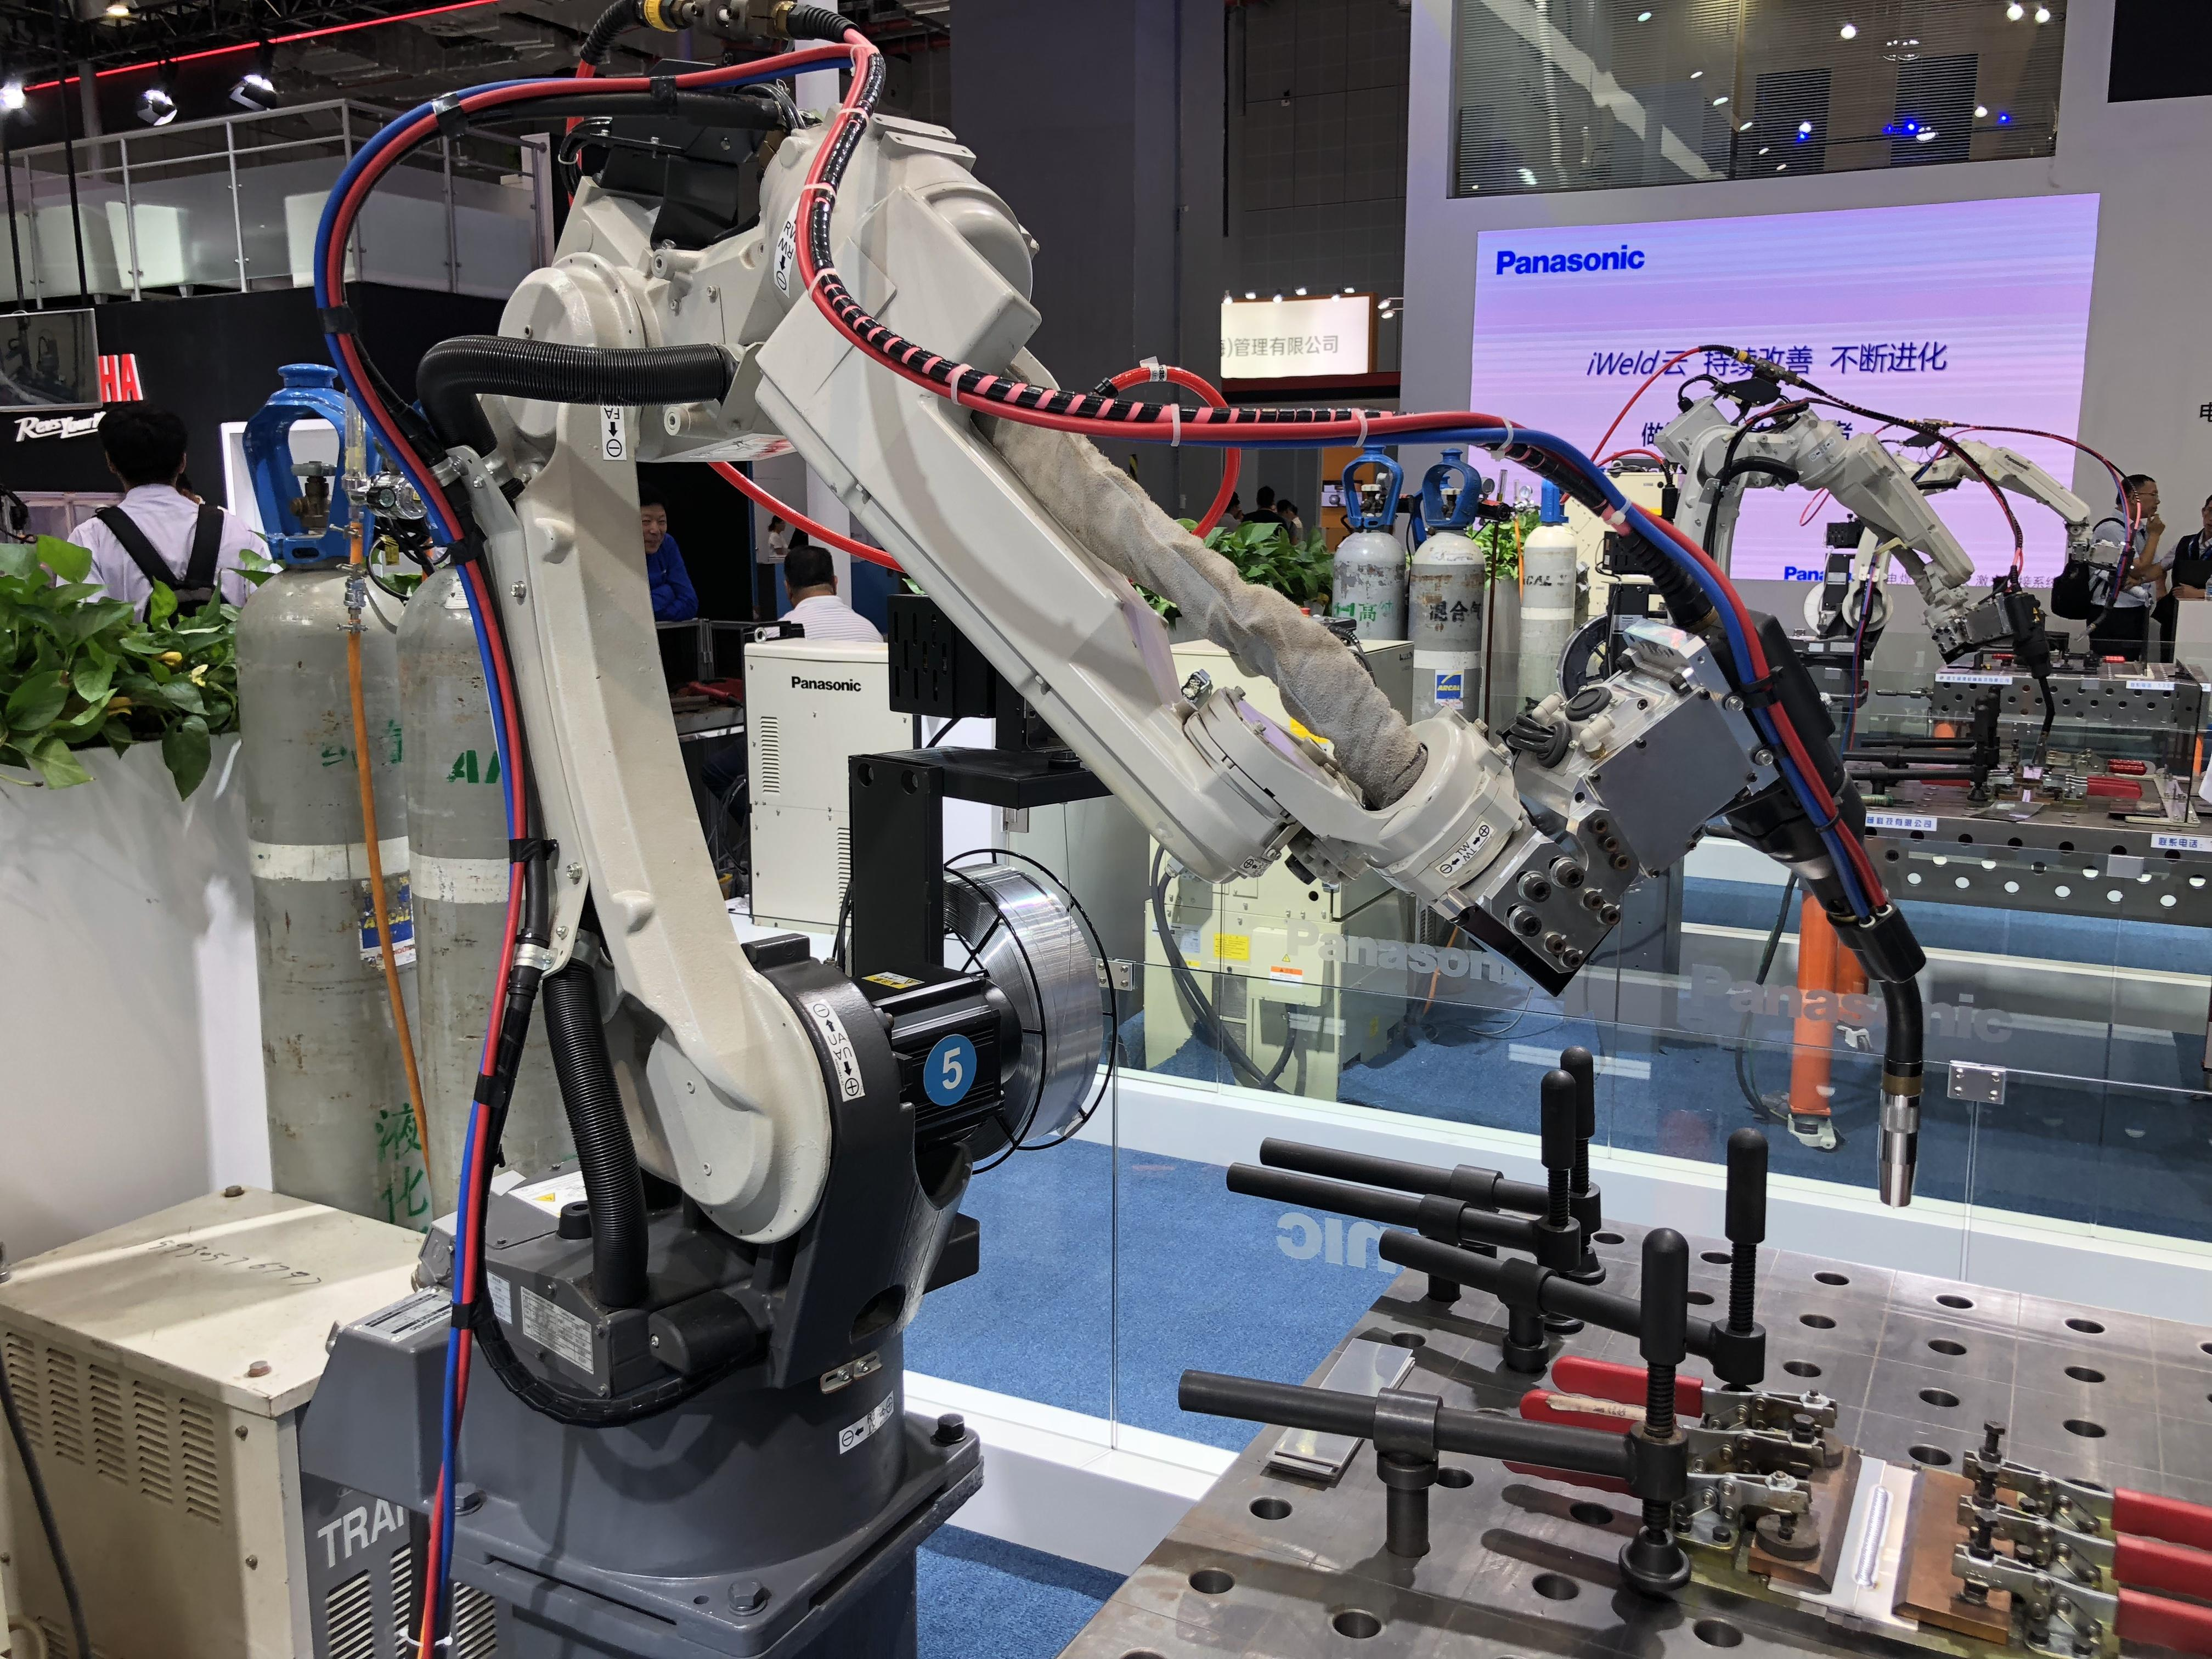 Panasonic Is Exhibiting Its Intelligent Manufacturing